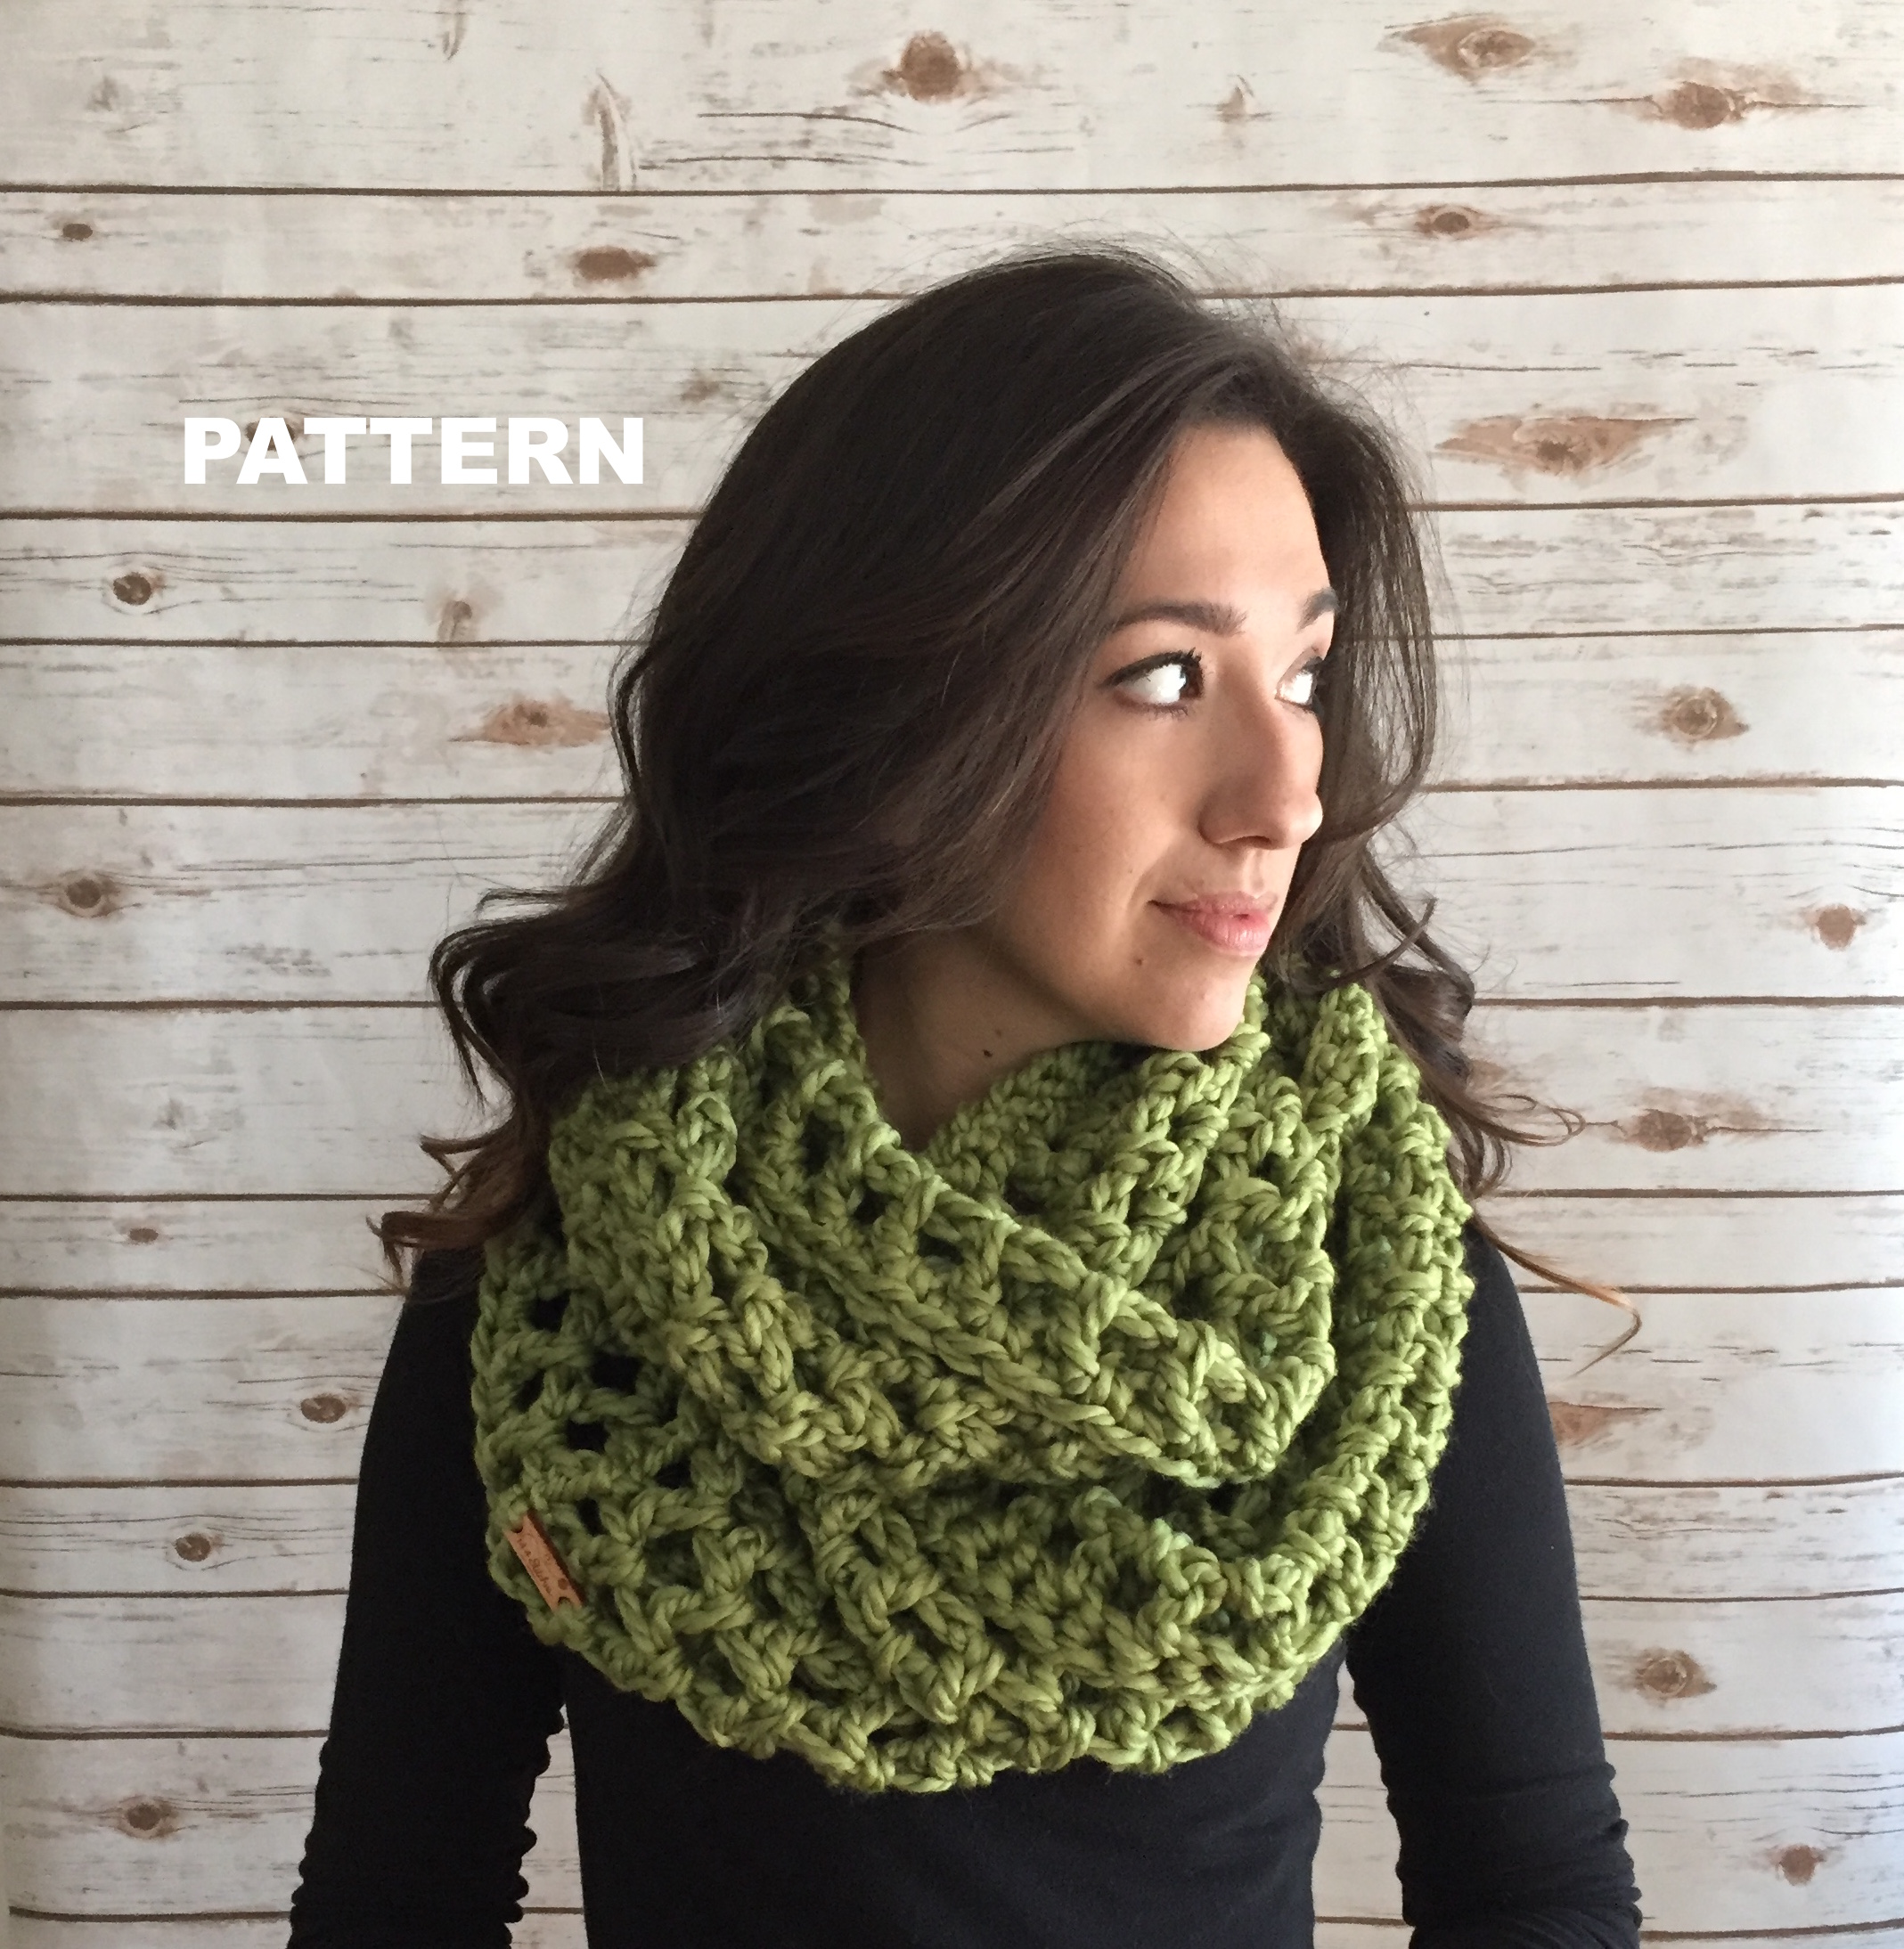 Ollie Oversized Infinity Scarf Crochet Pattern — 144 Stitches